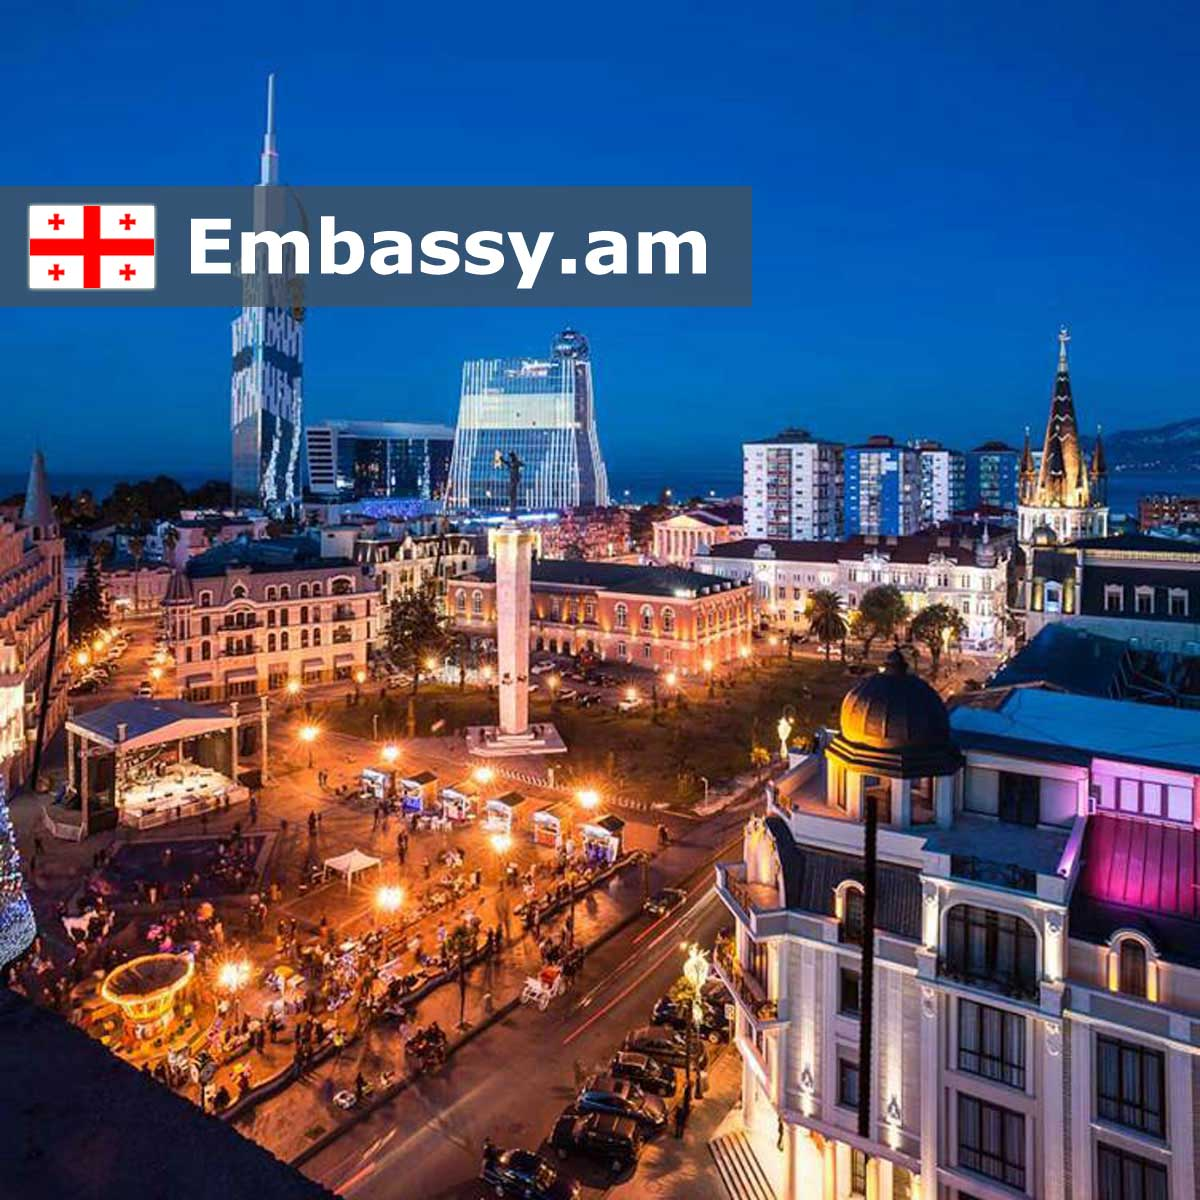 Batumi - Hotels in Georgia - Embassy.am